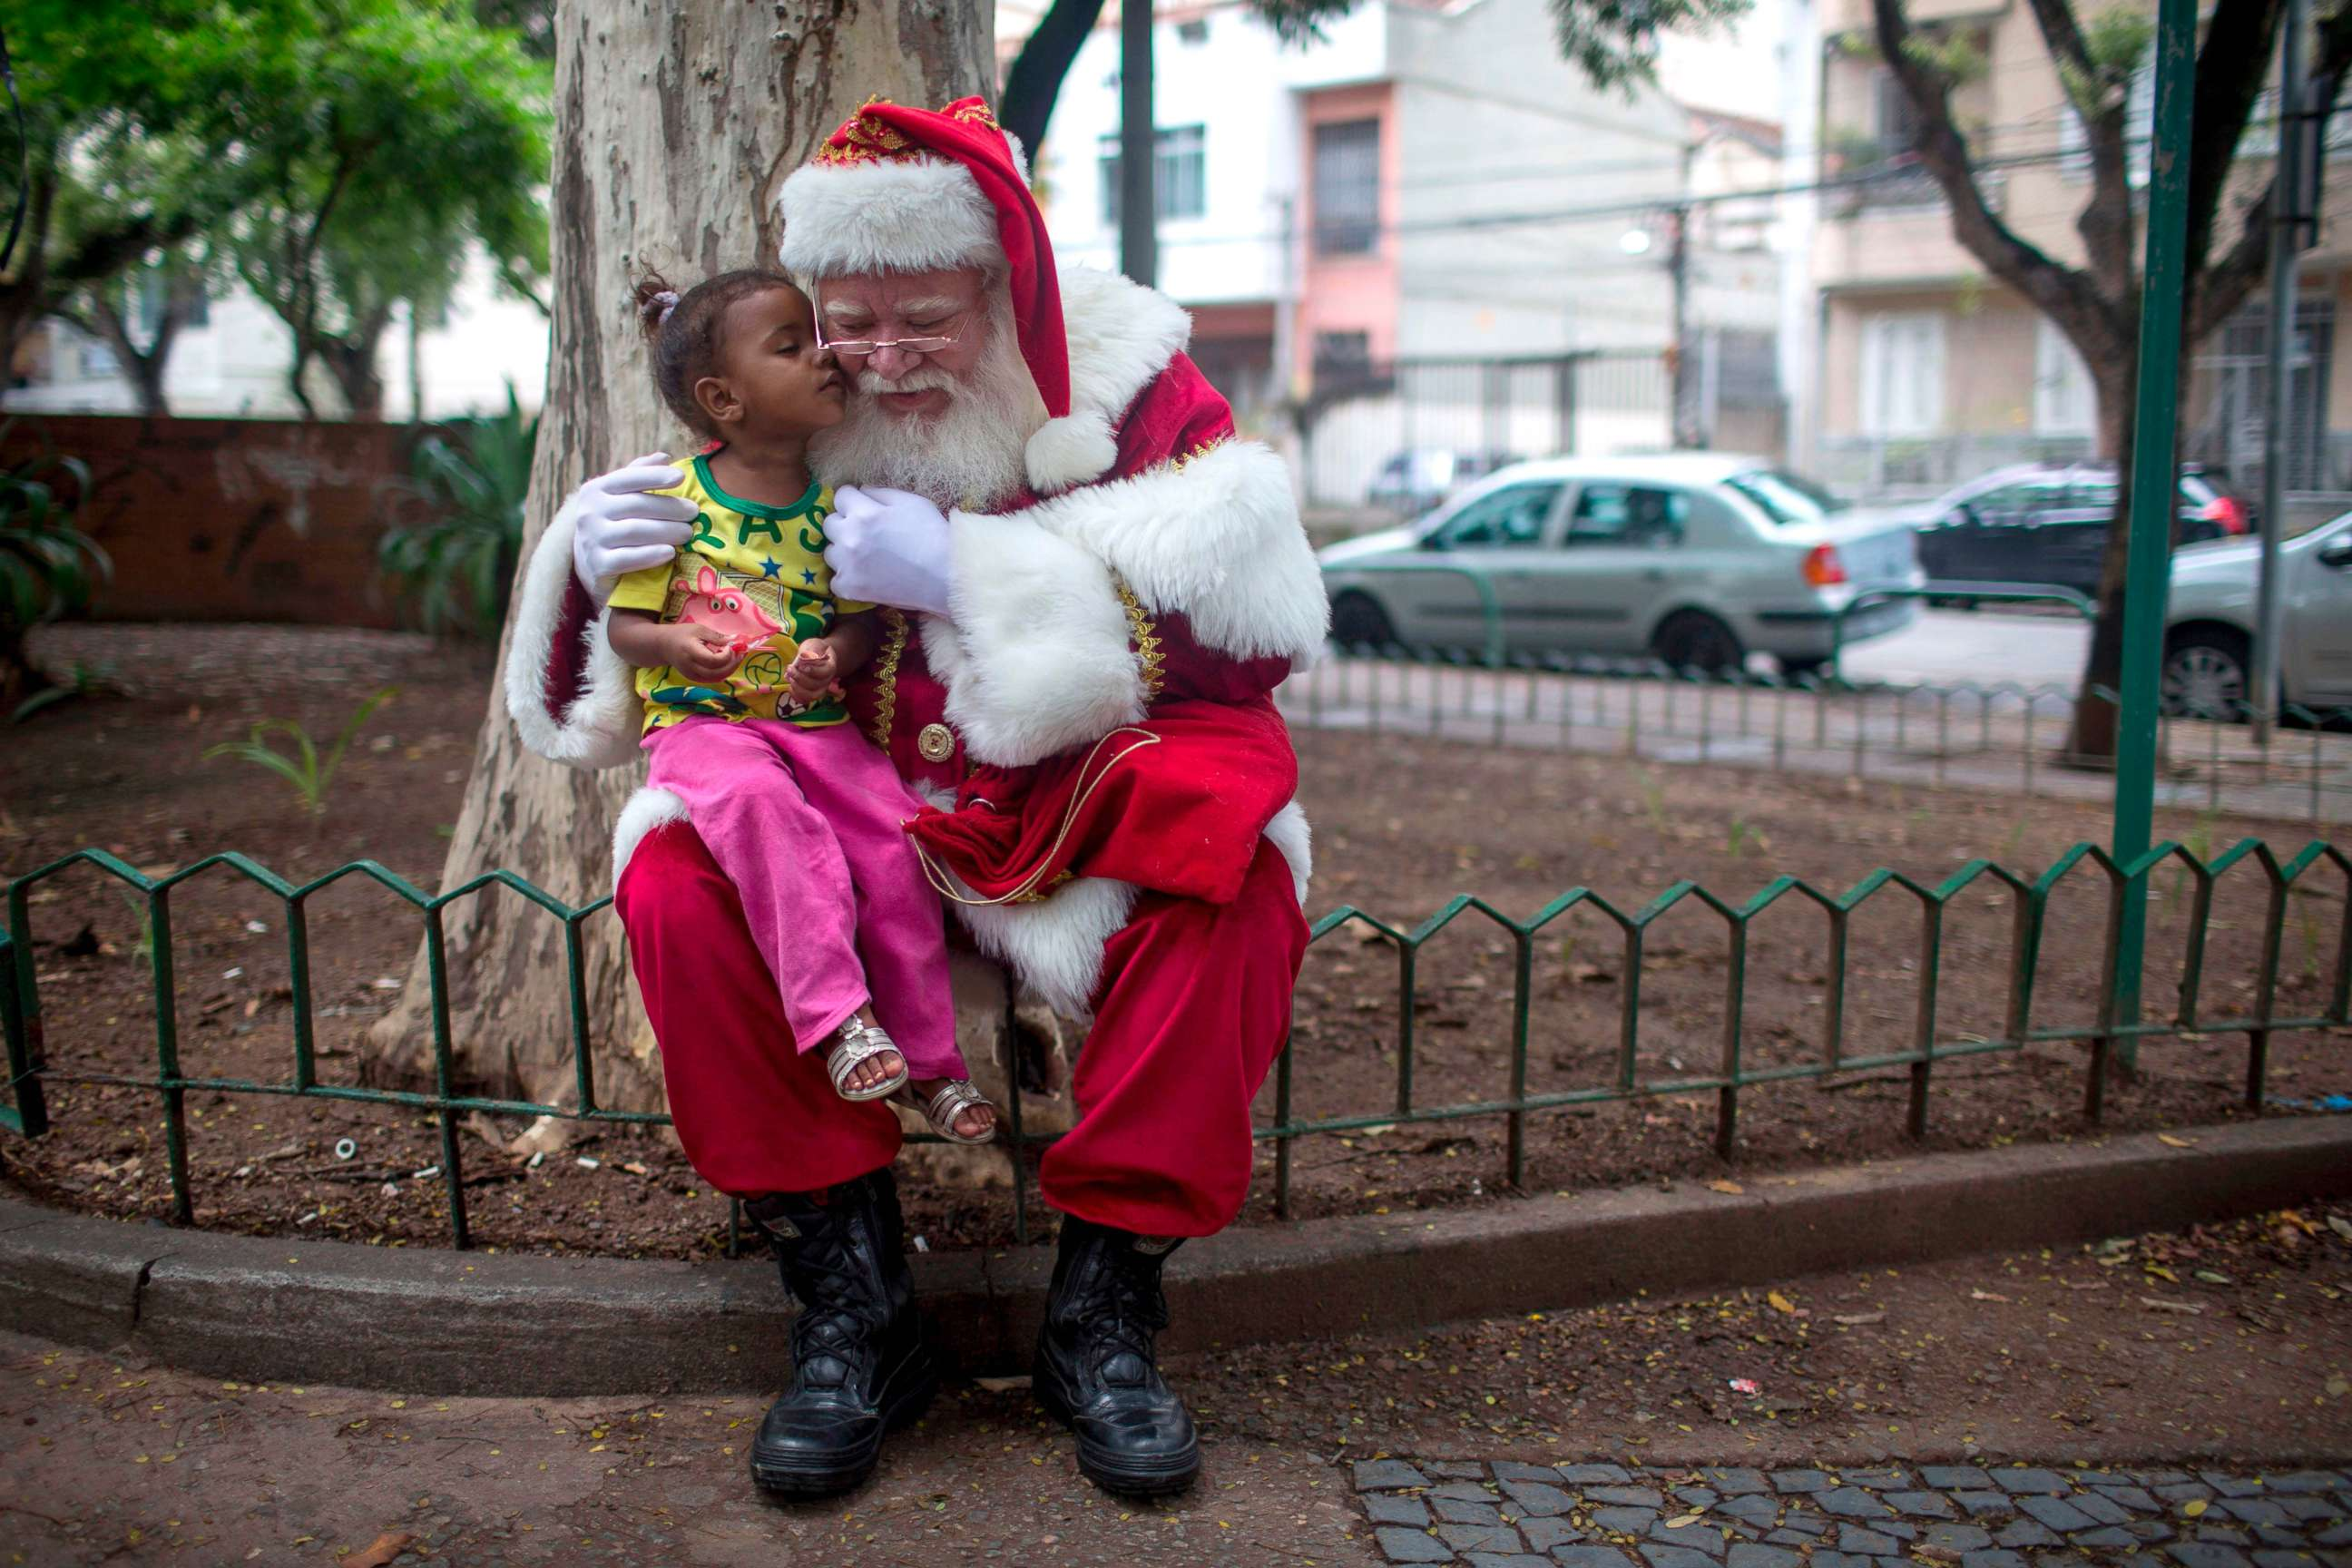 a professional santa claus poses for pictures with a young girl to celebrate the end of the christmas season in rio de janeiro dec 26 2017 - Santa Claus Santa